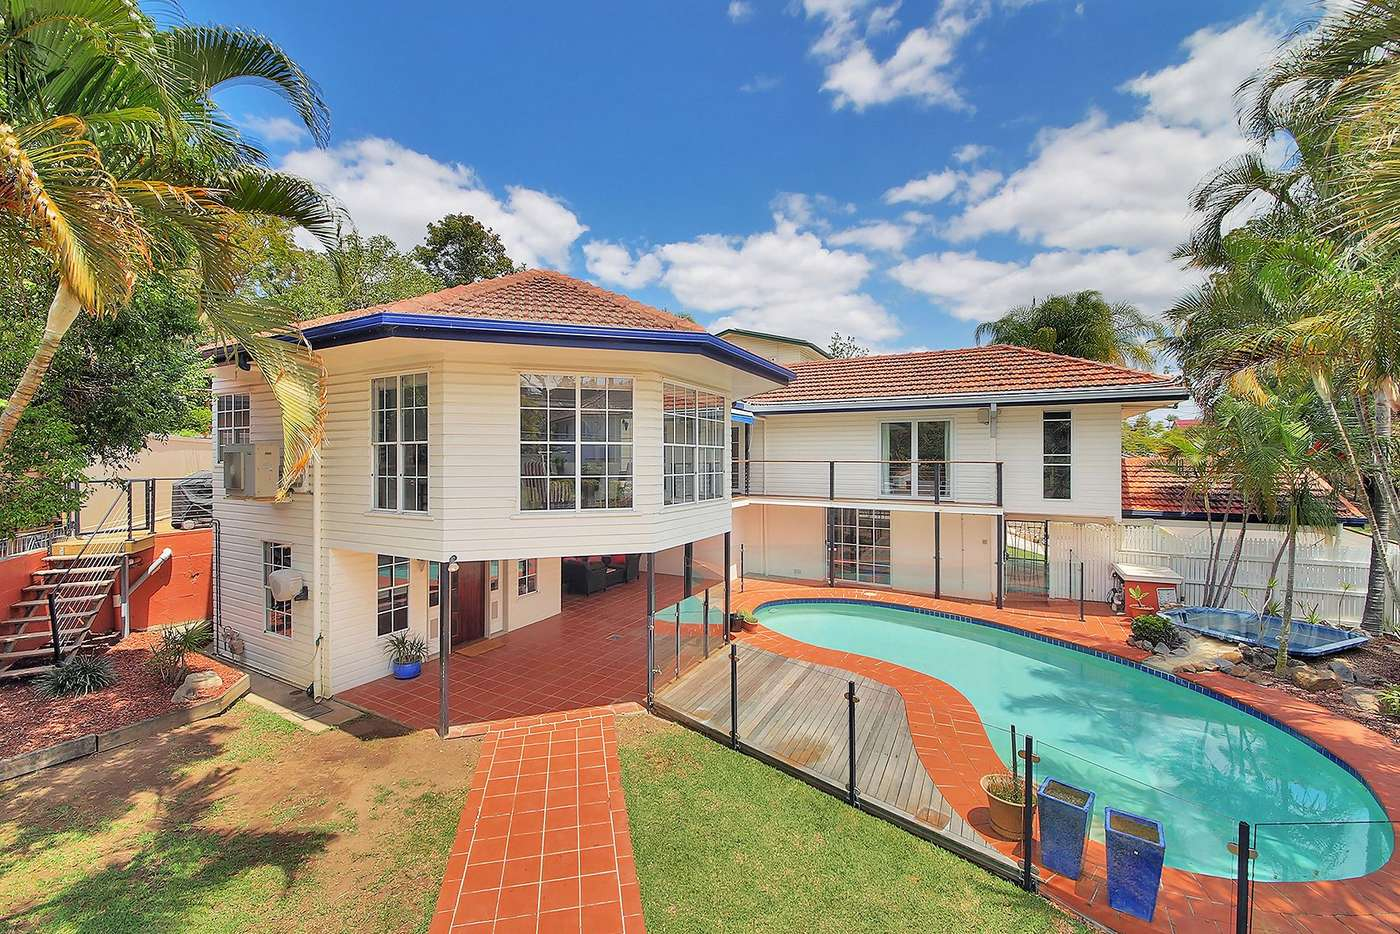 Main view of Homely house listing, 37 Coonara Street, Holland Park QLD 4121